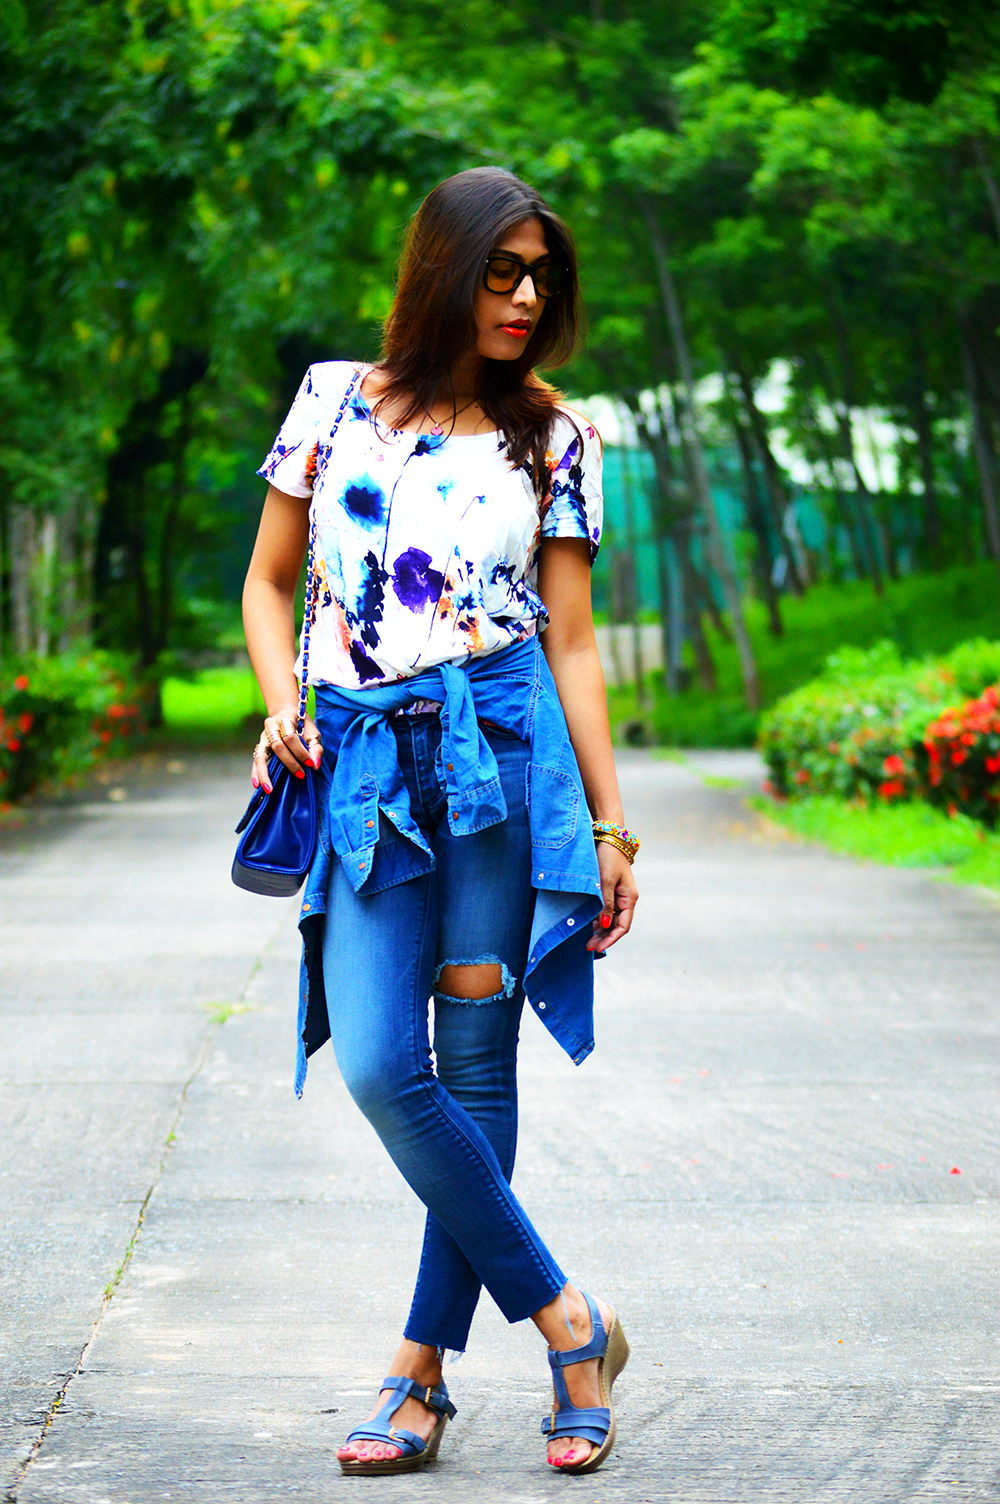 Fashion, Style, Photography, Street Style, Fashion Photography, Denim, Only Top, New look Denim Shirt, Casual Wear, Street Style Photography, Denim Style-7